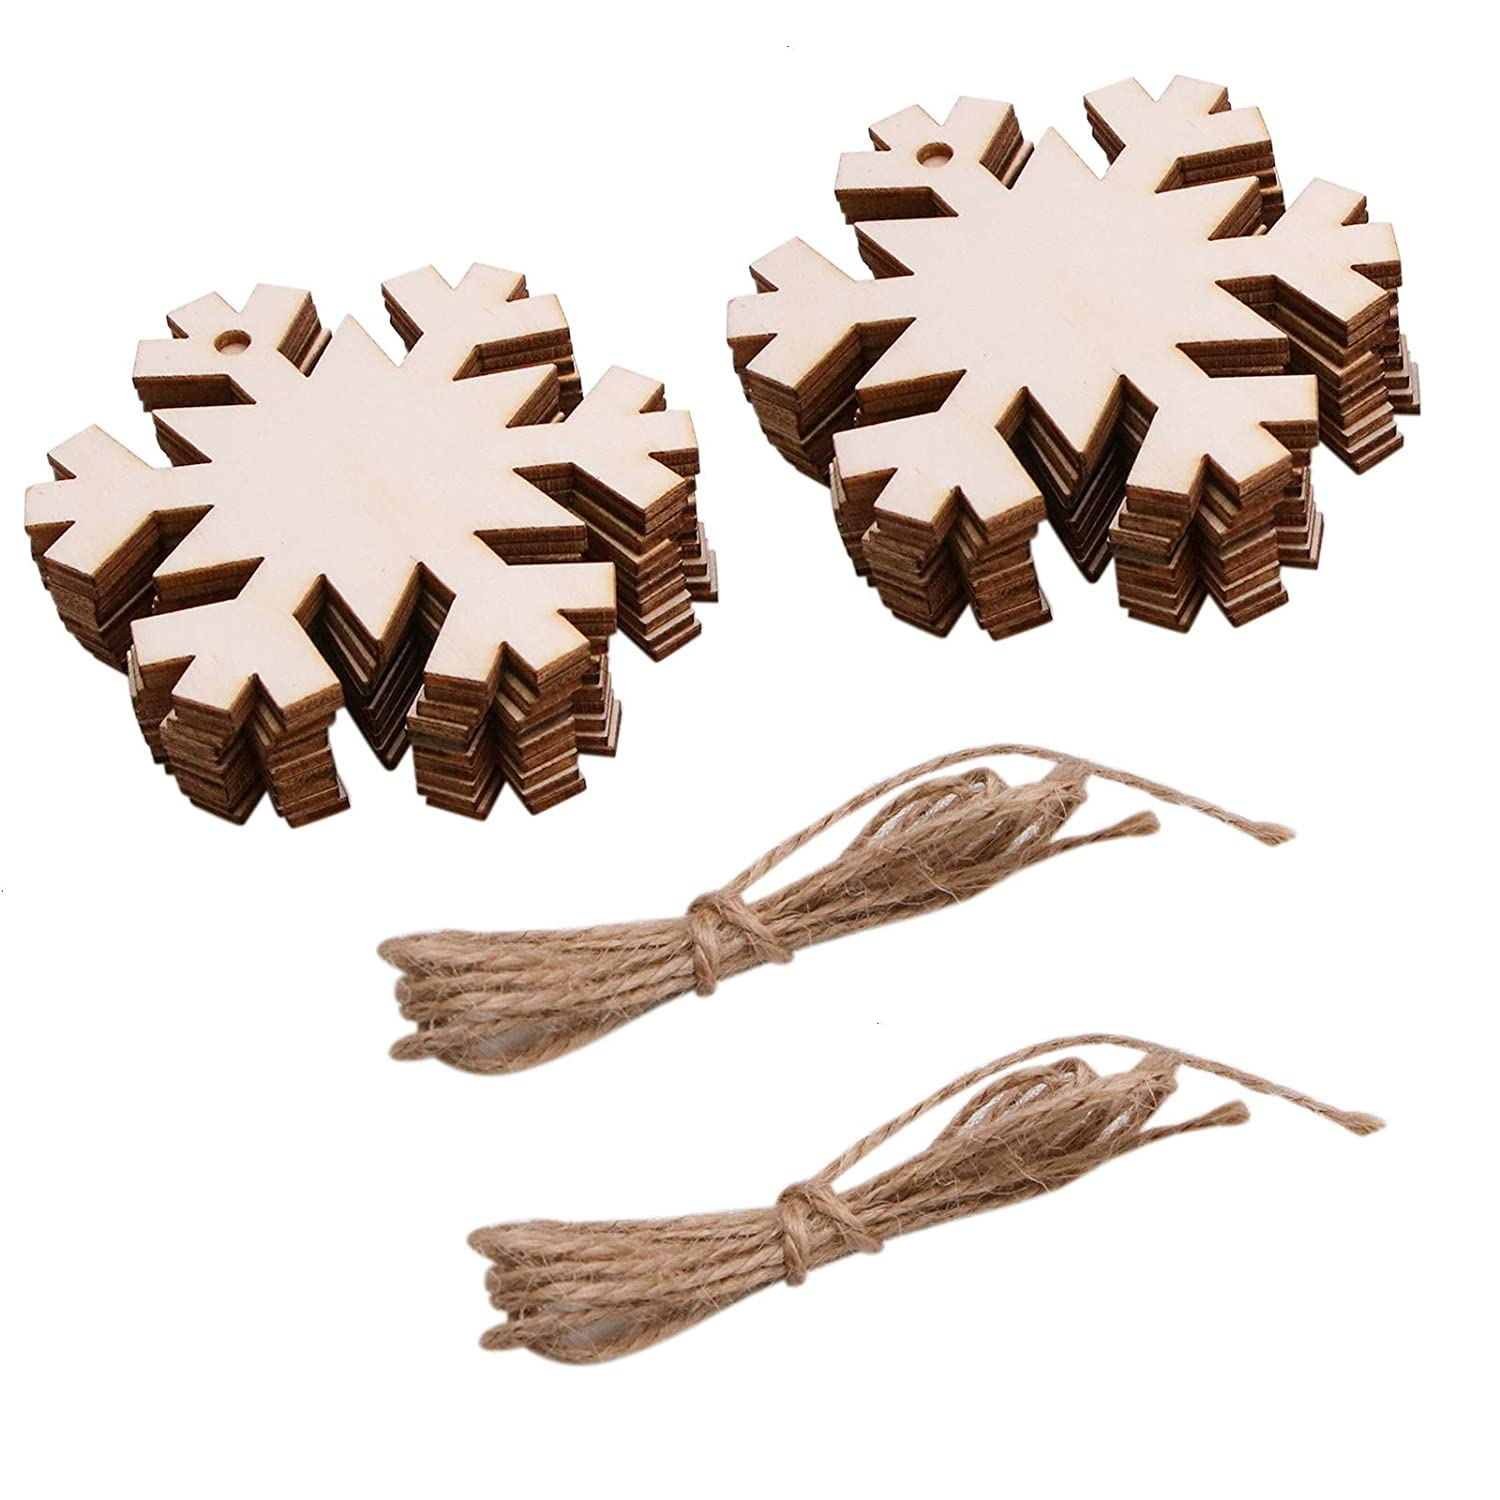 WSSROGY 20 Pieces Wooden Snowflake Christmas Tree Ornaments Hanging with Crafts Twines for Christmas Tree Pendant Ornaments